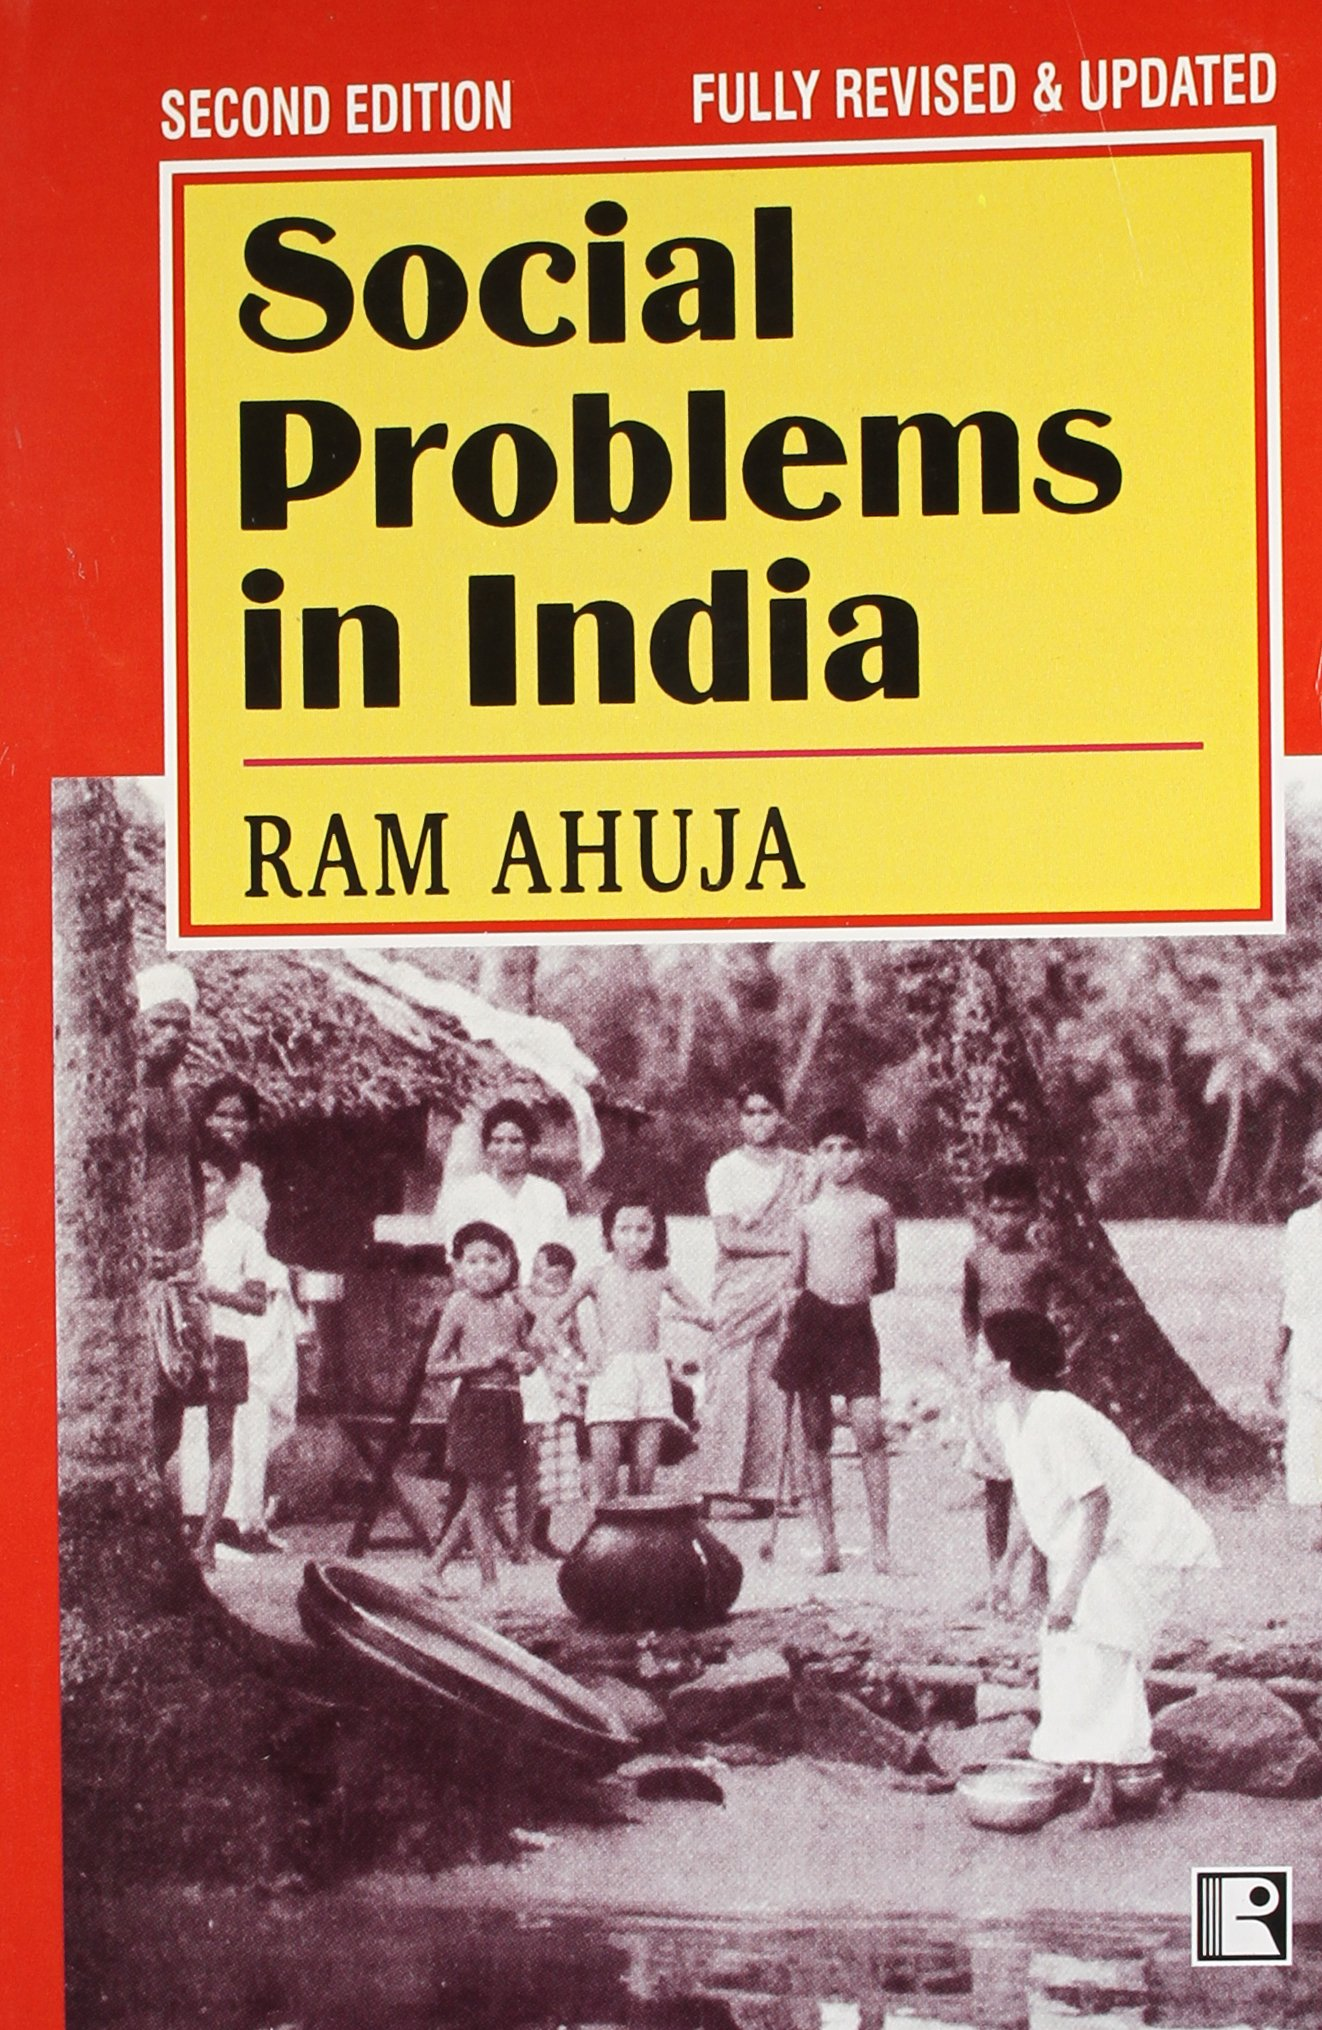 buy social problems in book online at low prices in  buy social problems in book online at low prices in social problems in reviews ratings in